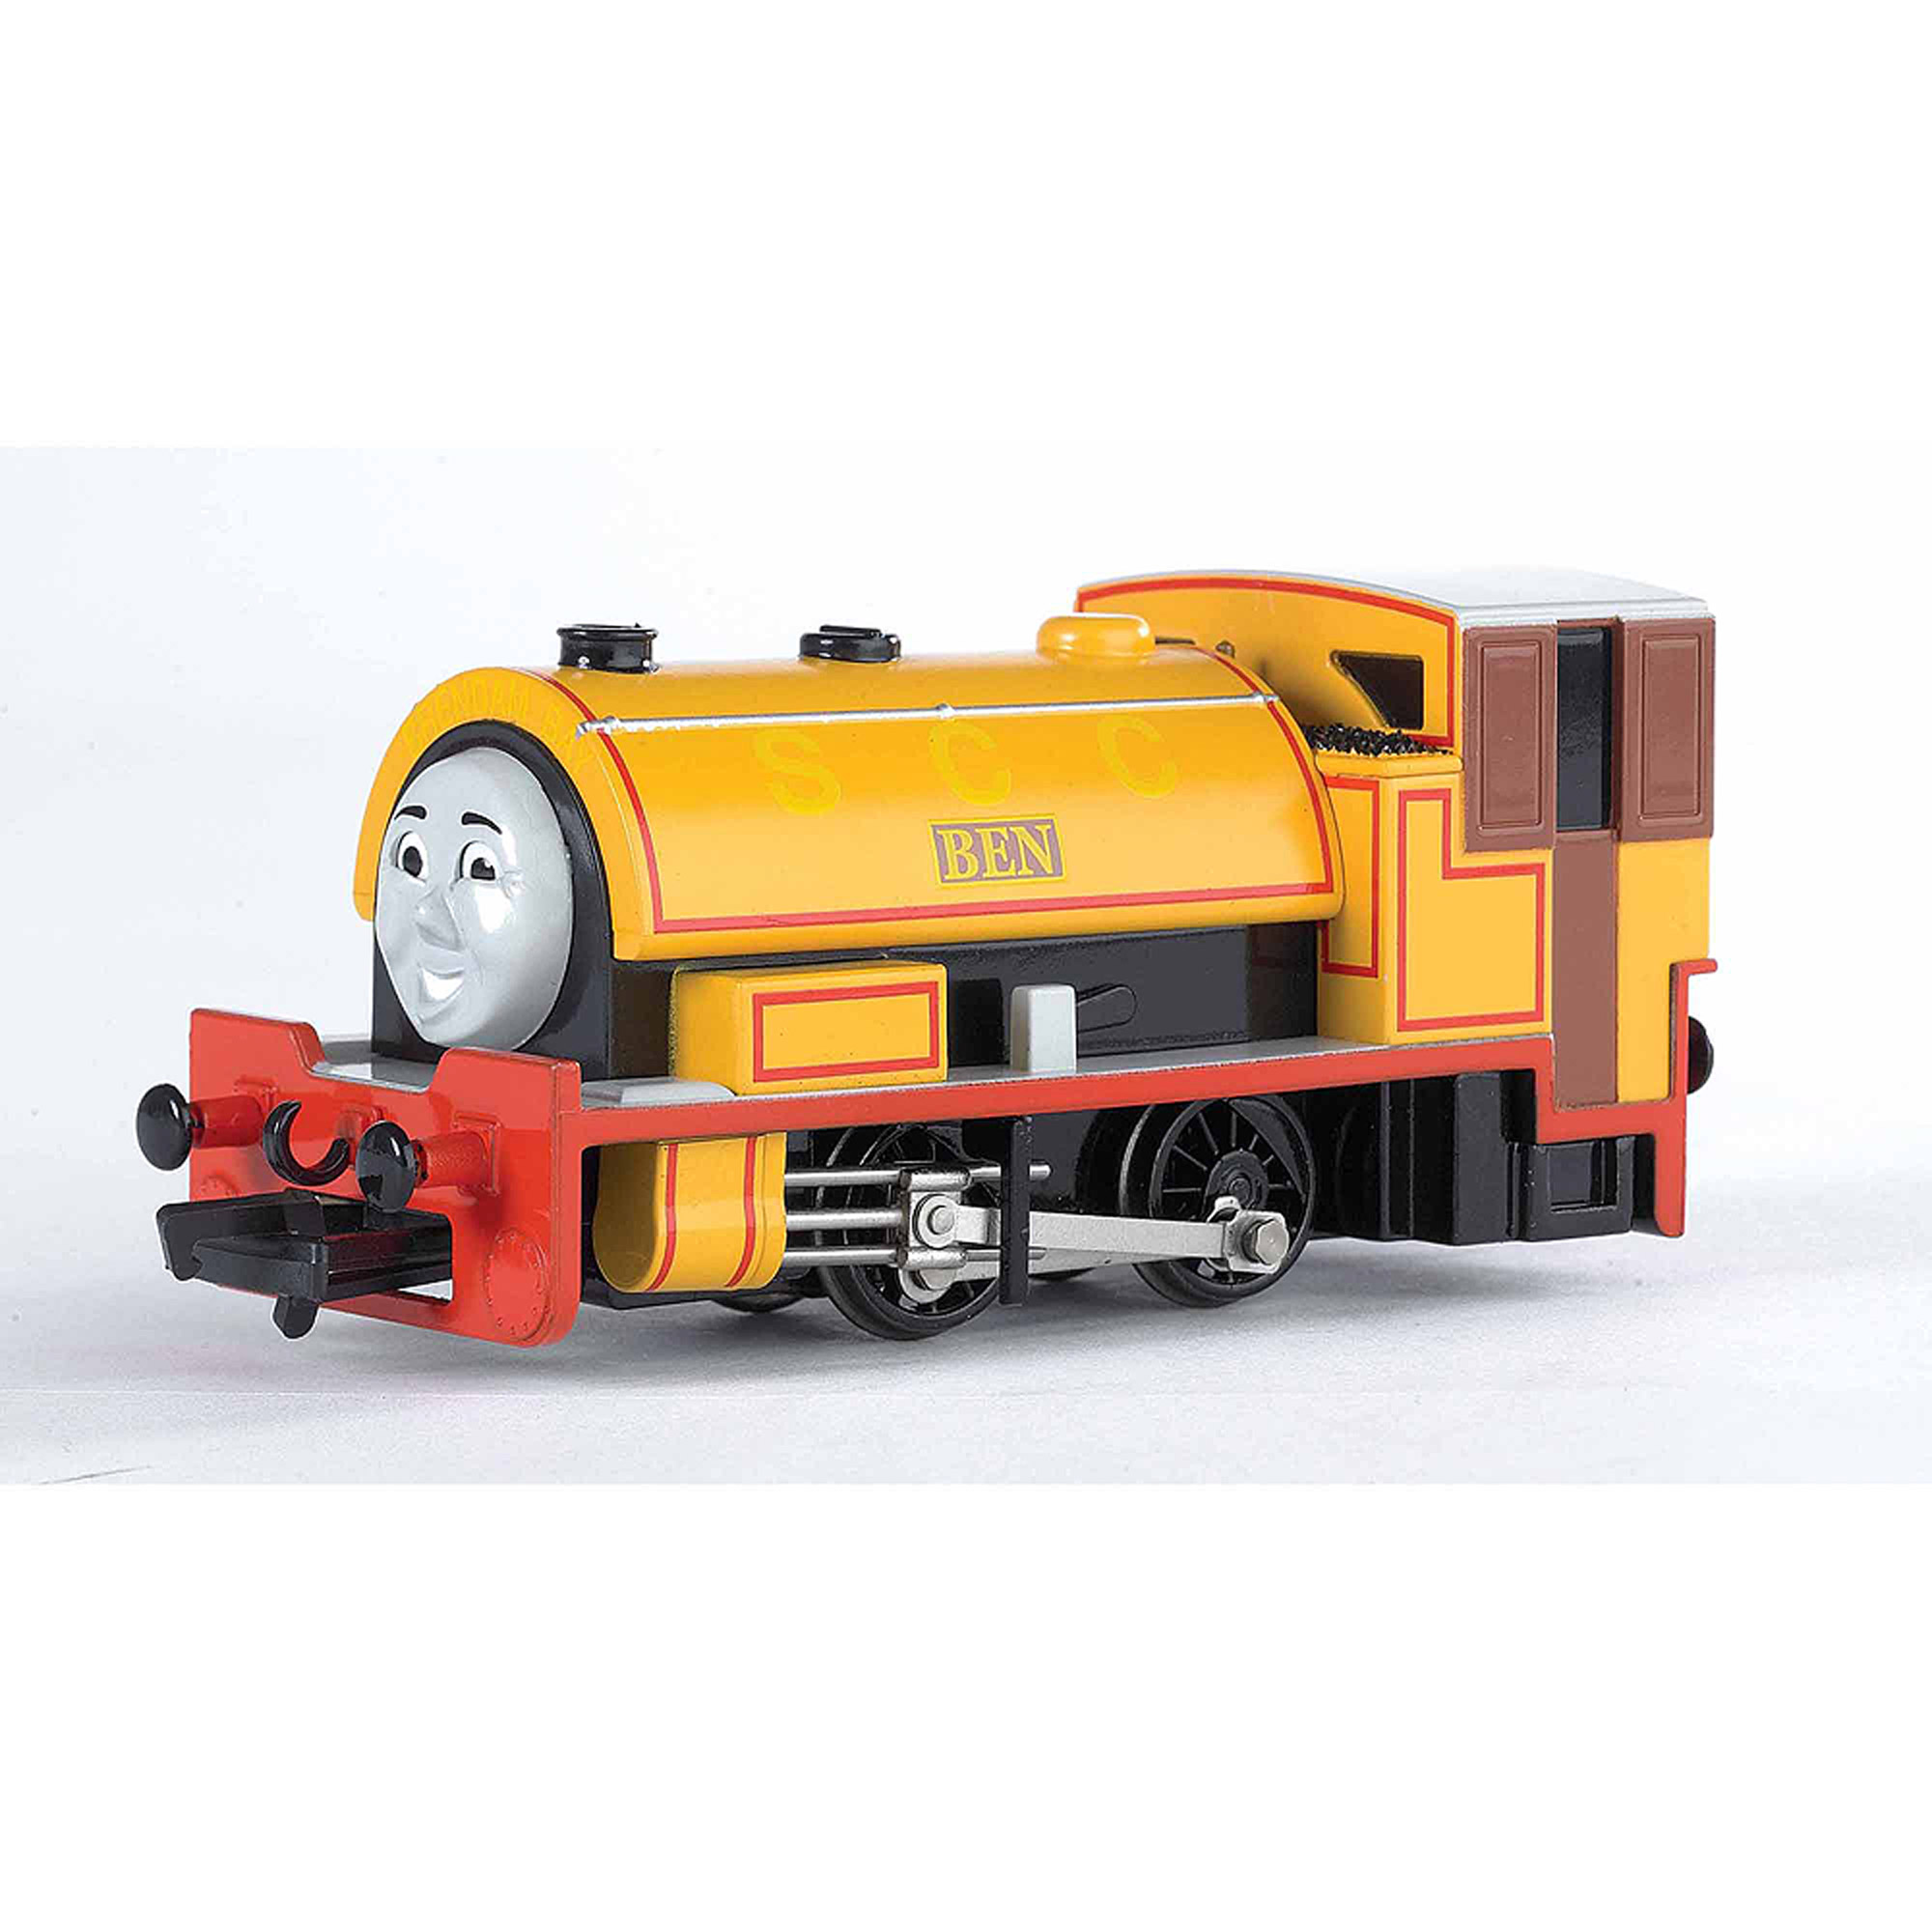 Bachmann Trains Thomas and Friends Ben Locomotive with Moving Eyes, HO Scale Train